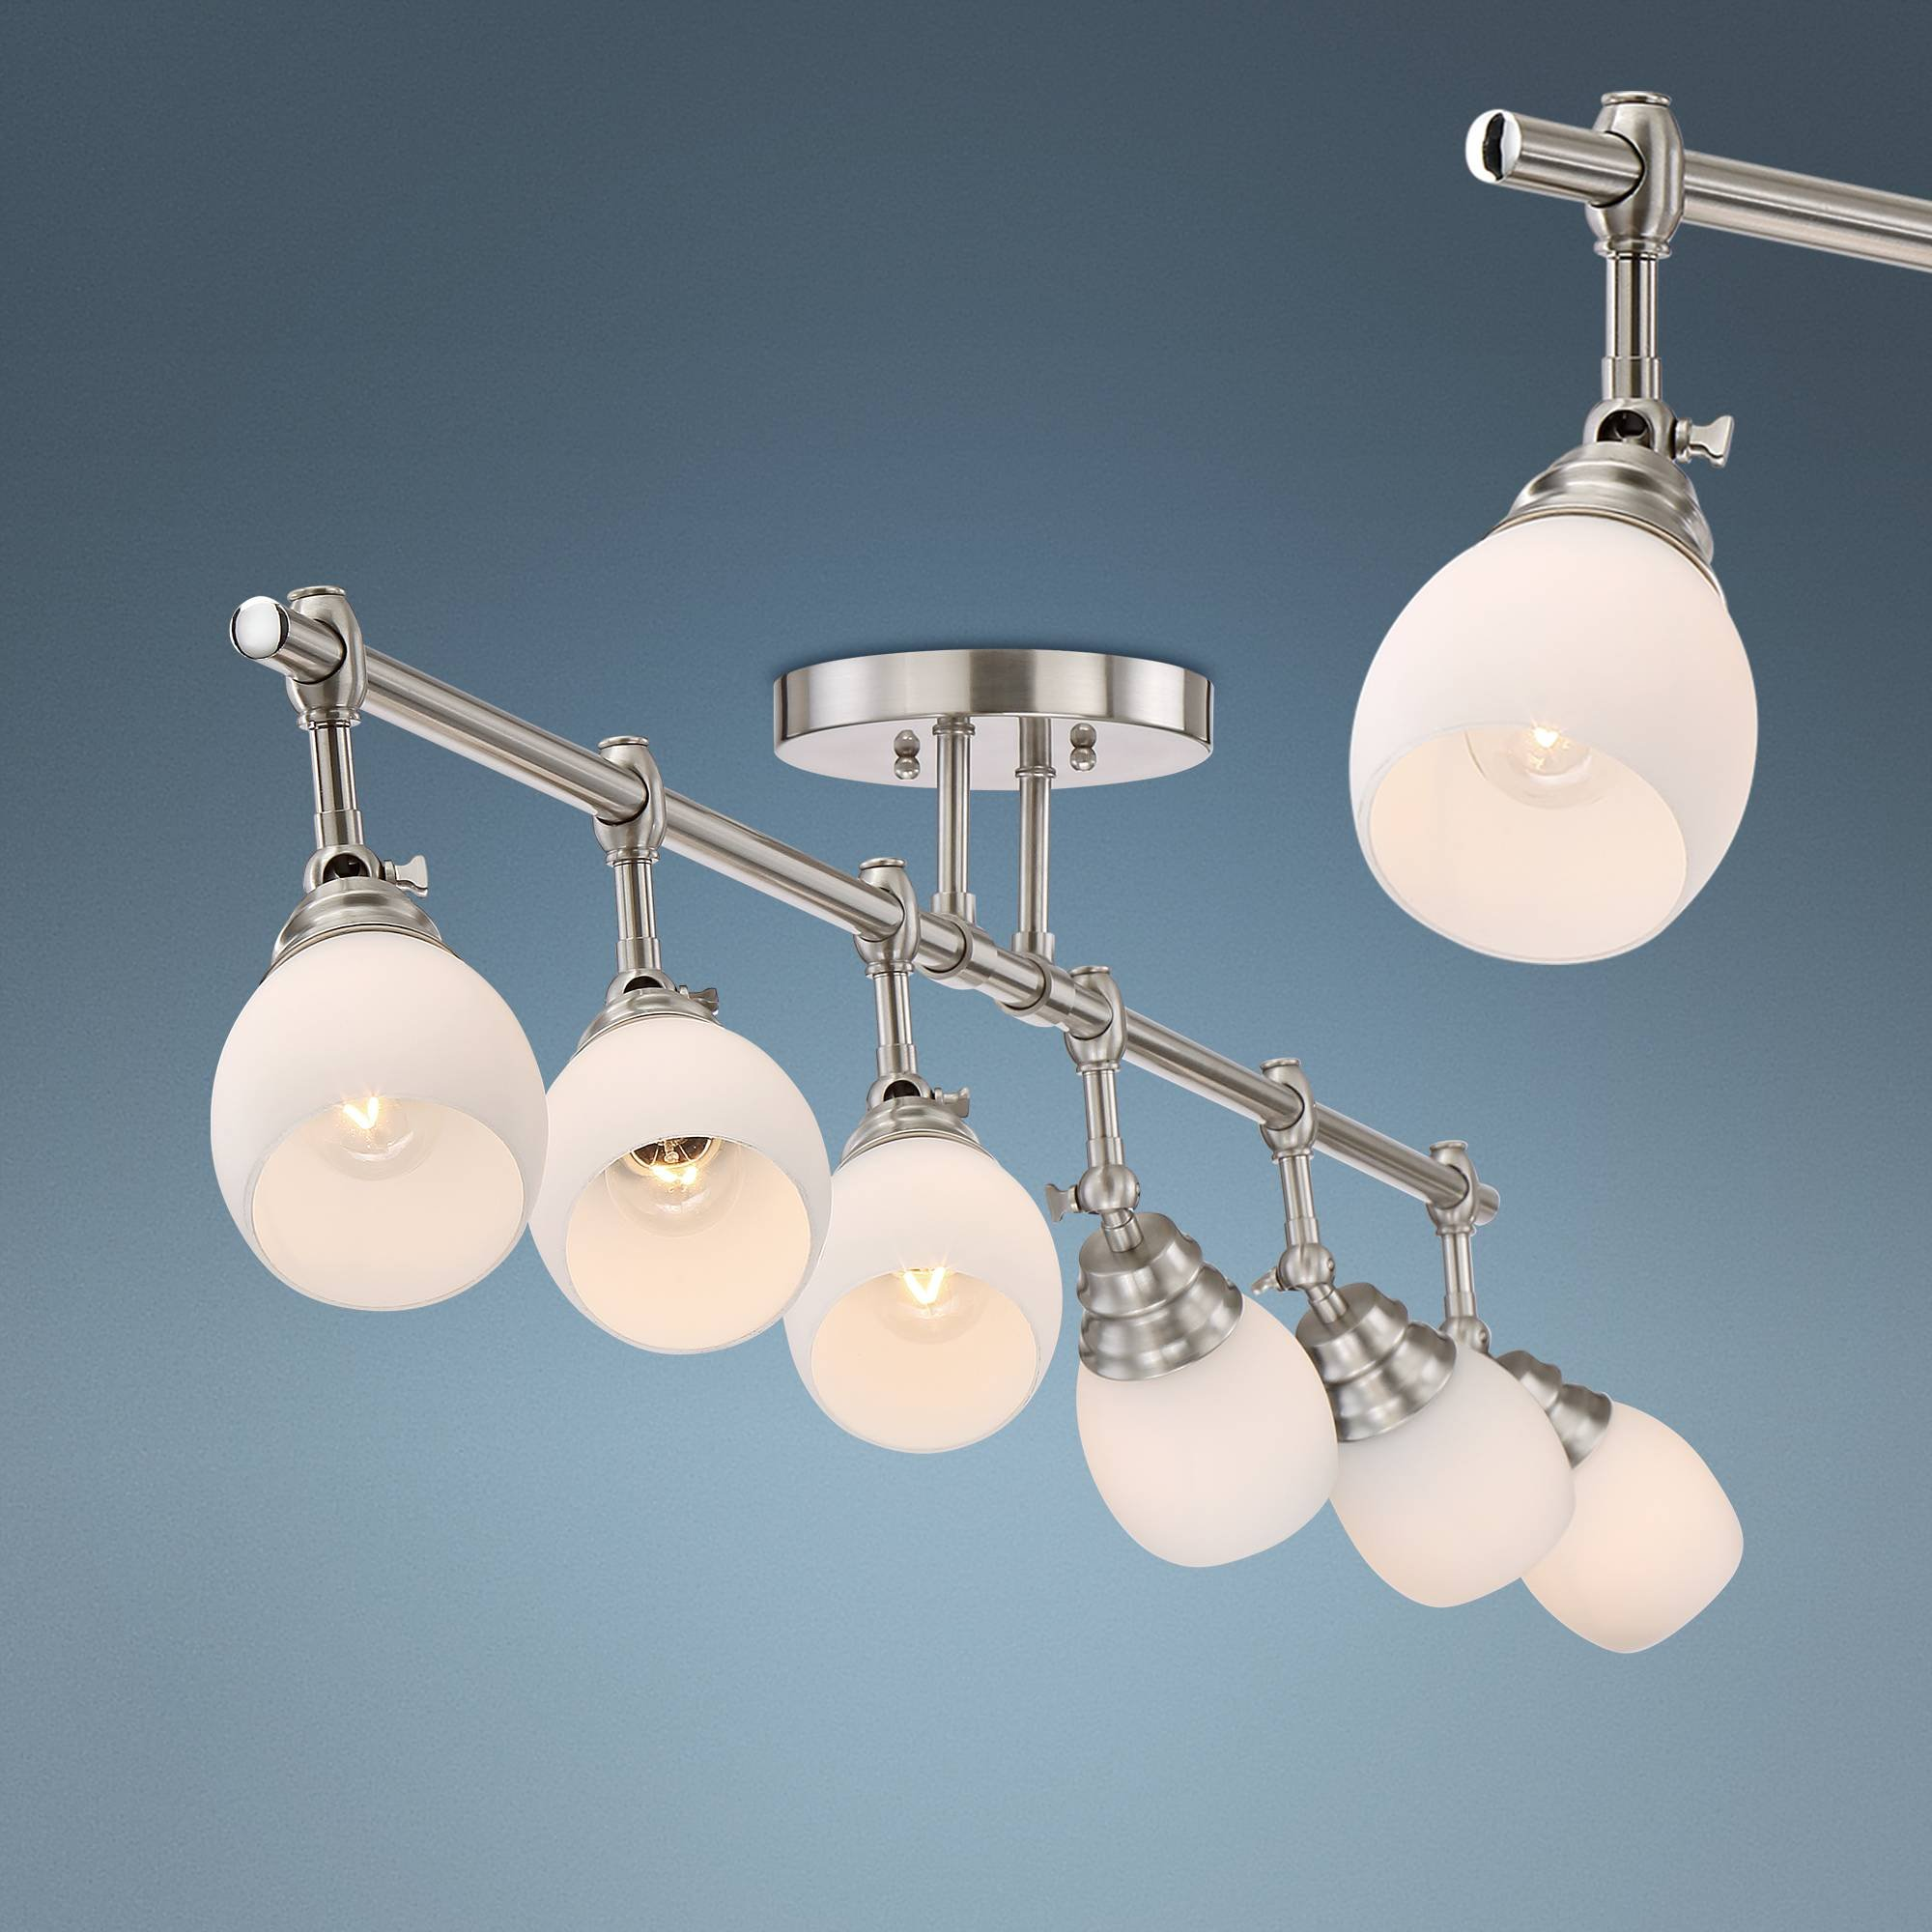 Pro Track Elm Park Brushed Nickel 6-Light Fixture - Pro Track